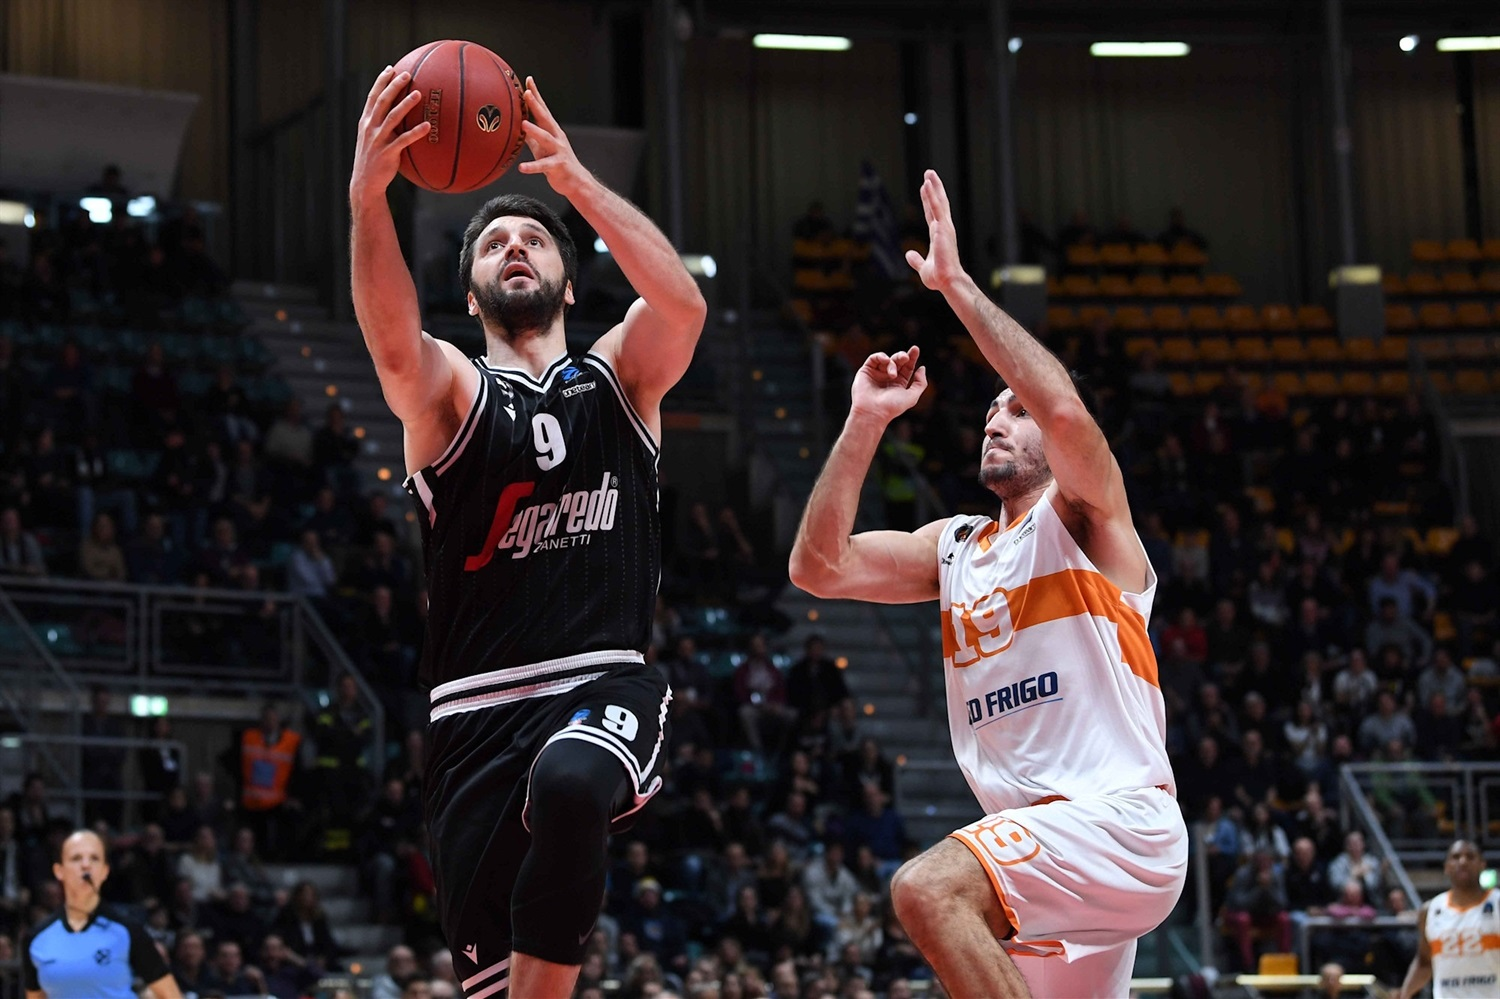 Stefan Markovic - Segafredo Virtus Bologna (photo Virtus) - EC19